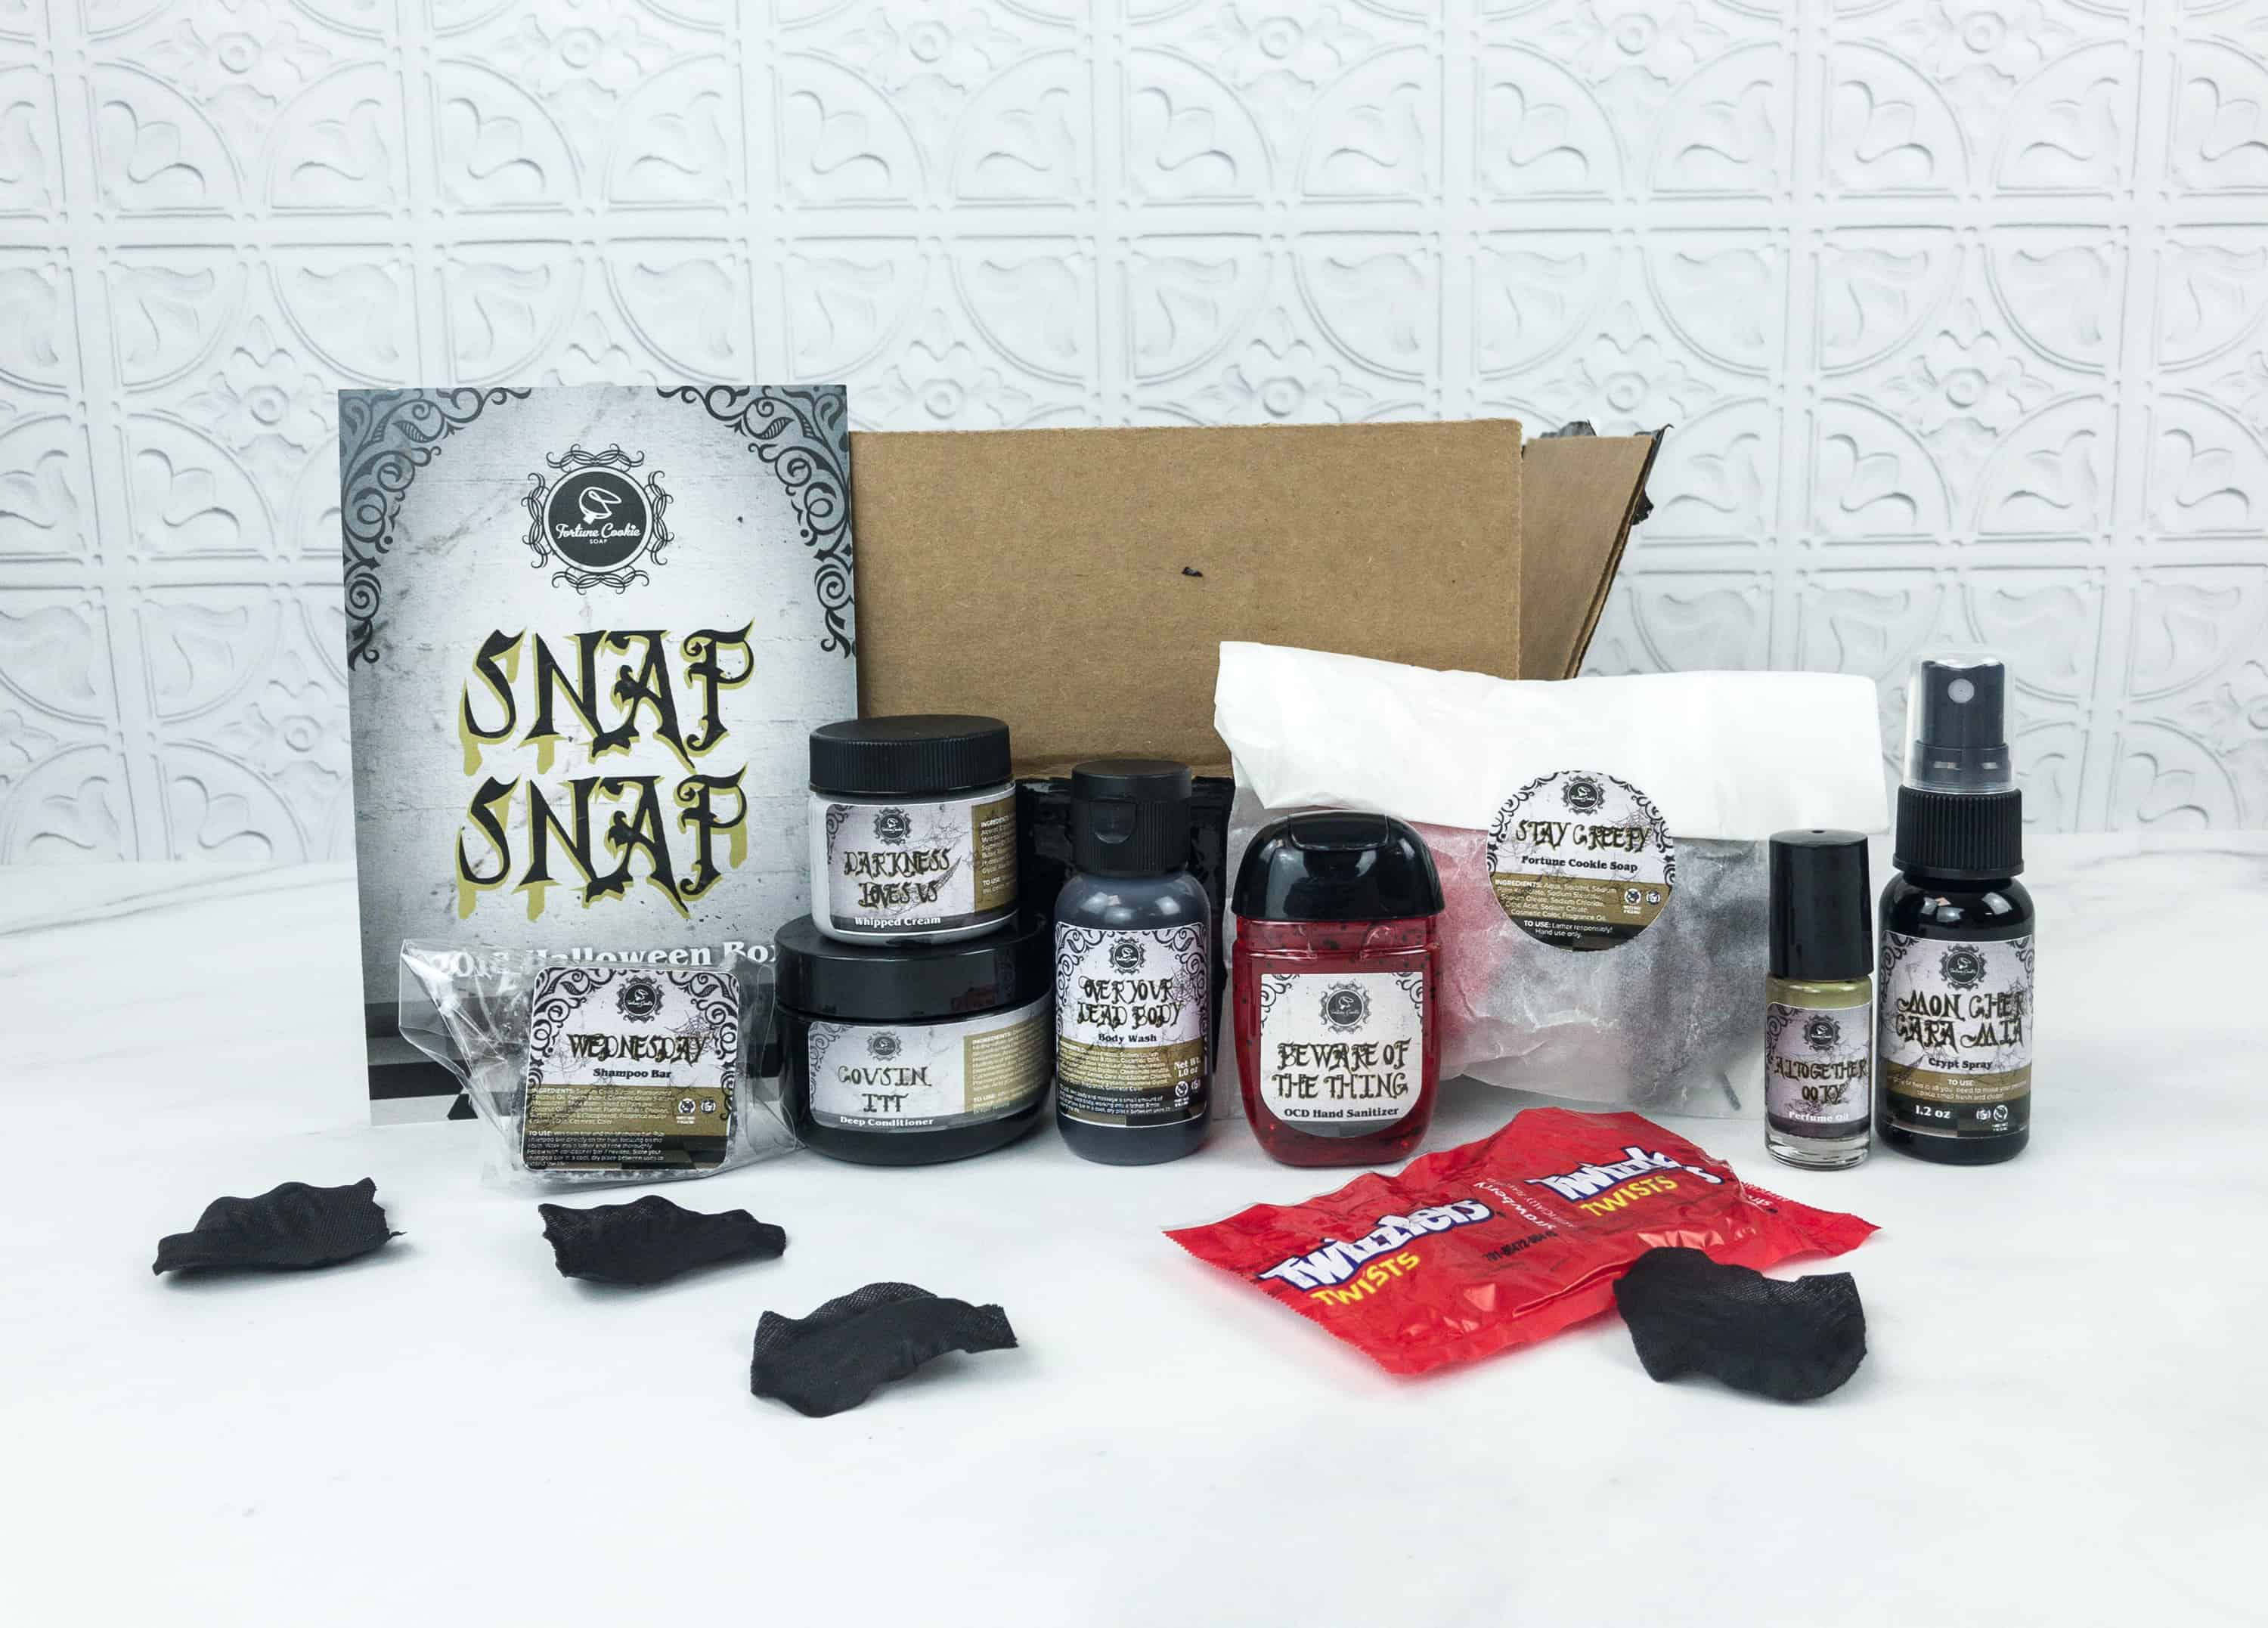 Fortune Cookie Soap FCS of the Month 2018 Limited Edition Box Review + Coupon